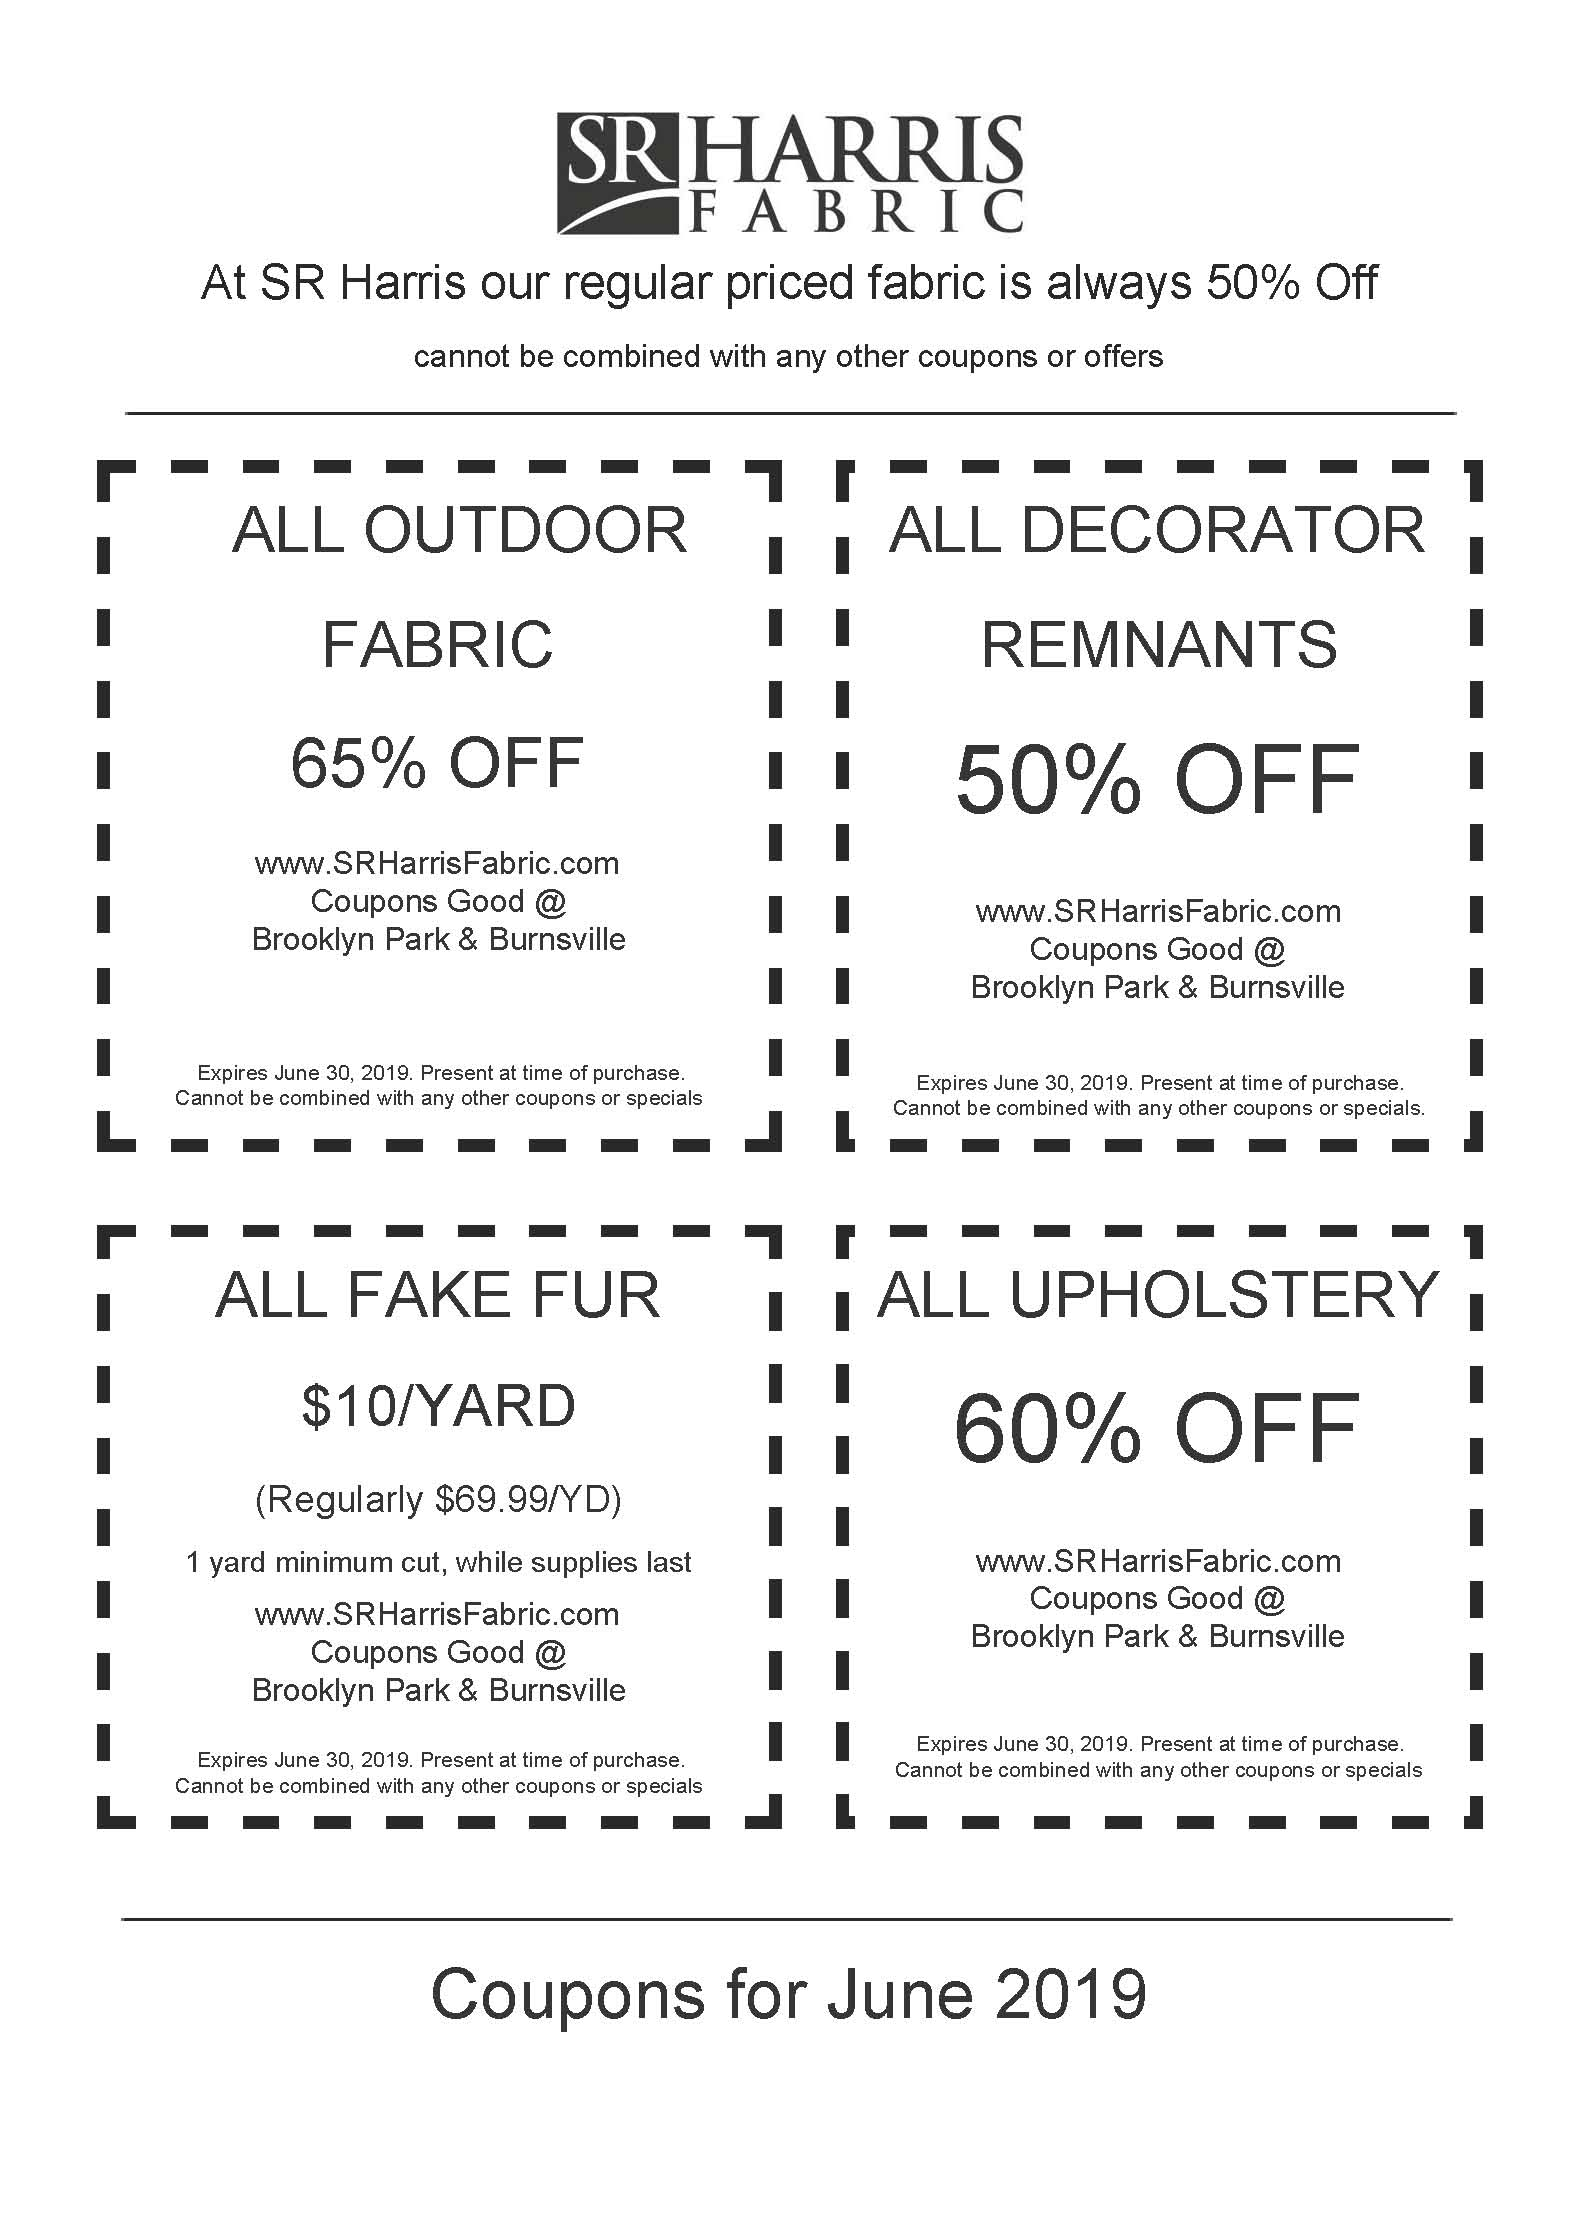 SR Harris Fabric Coupons for June 2019